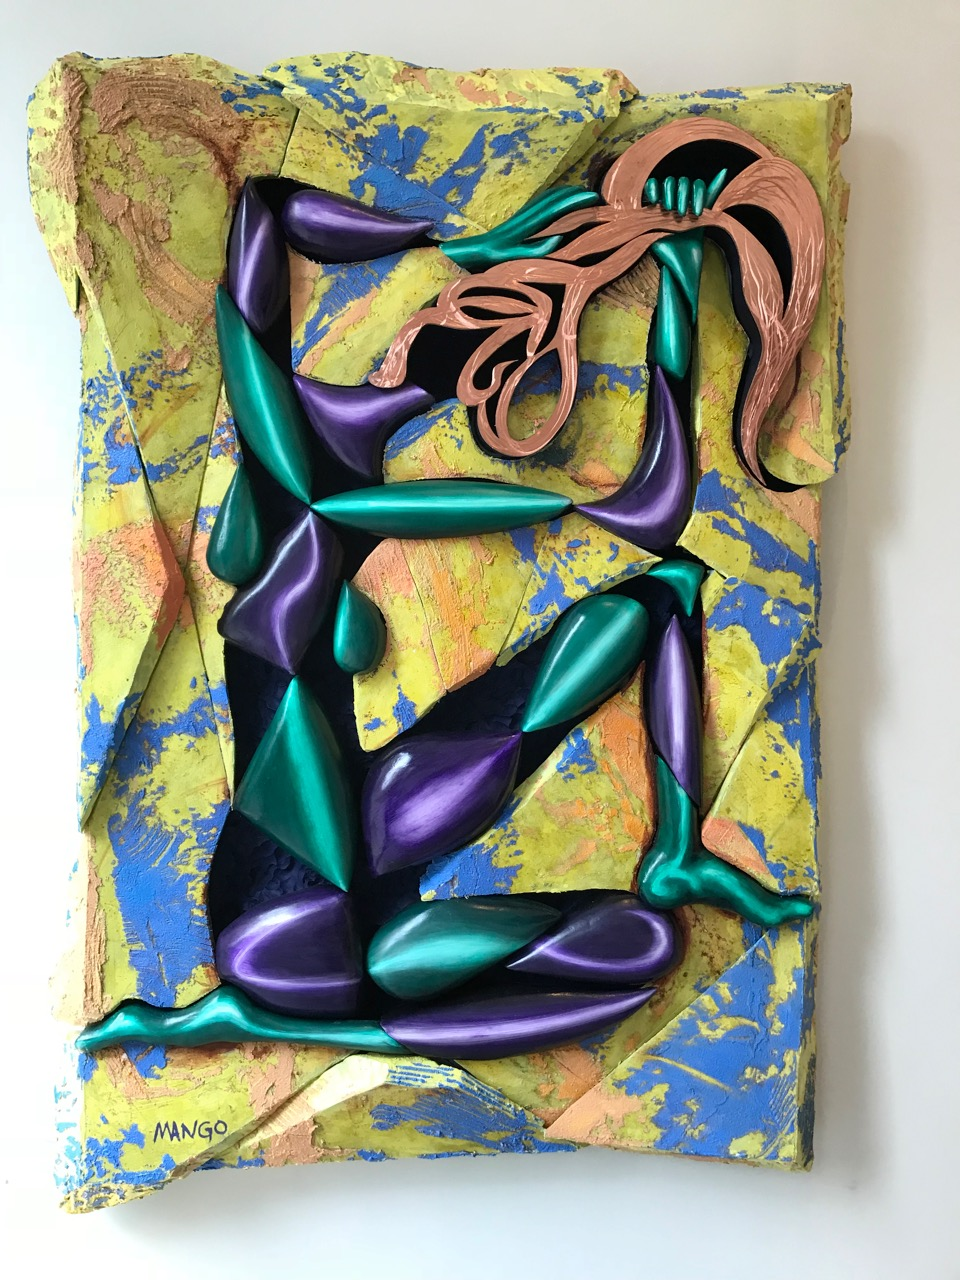 2018   78x56X6 inches  Oil on canvas, over sculpted foam on panel, three dimensional, sculpted female, copper hair  Signed by artist lower left front, signed dated back